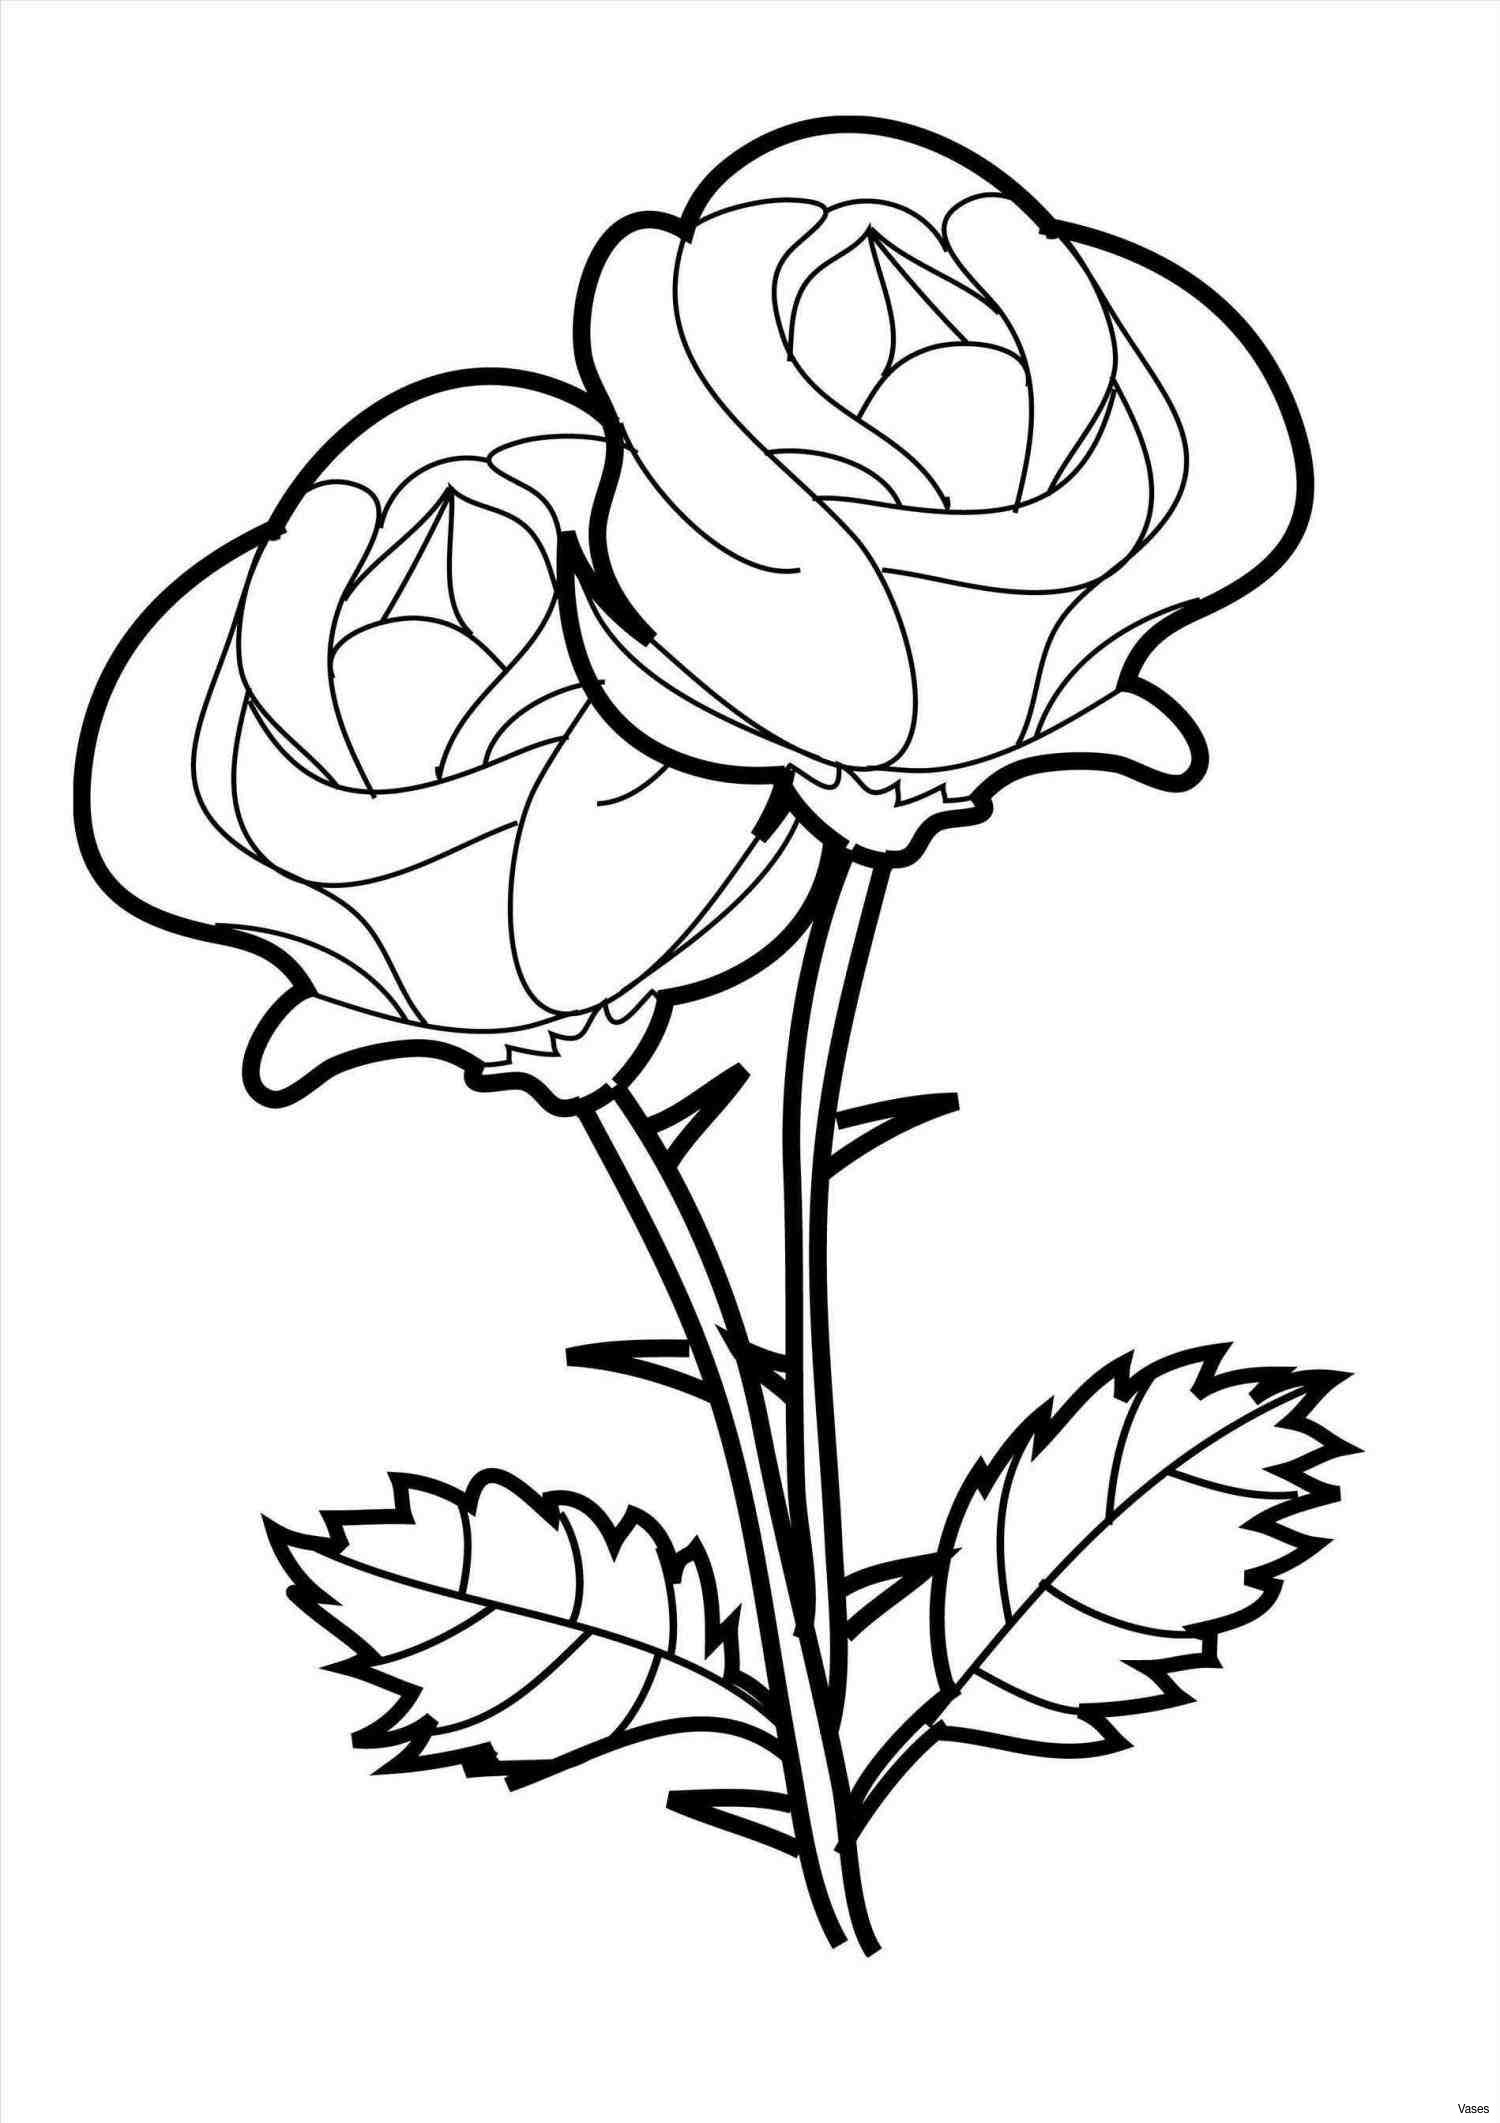 Bouquet clipart drawing, Bouquet drawing Transparent FREE.